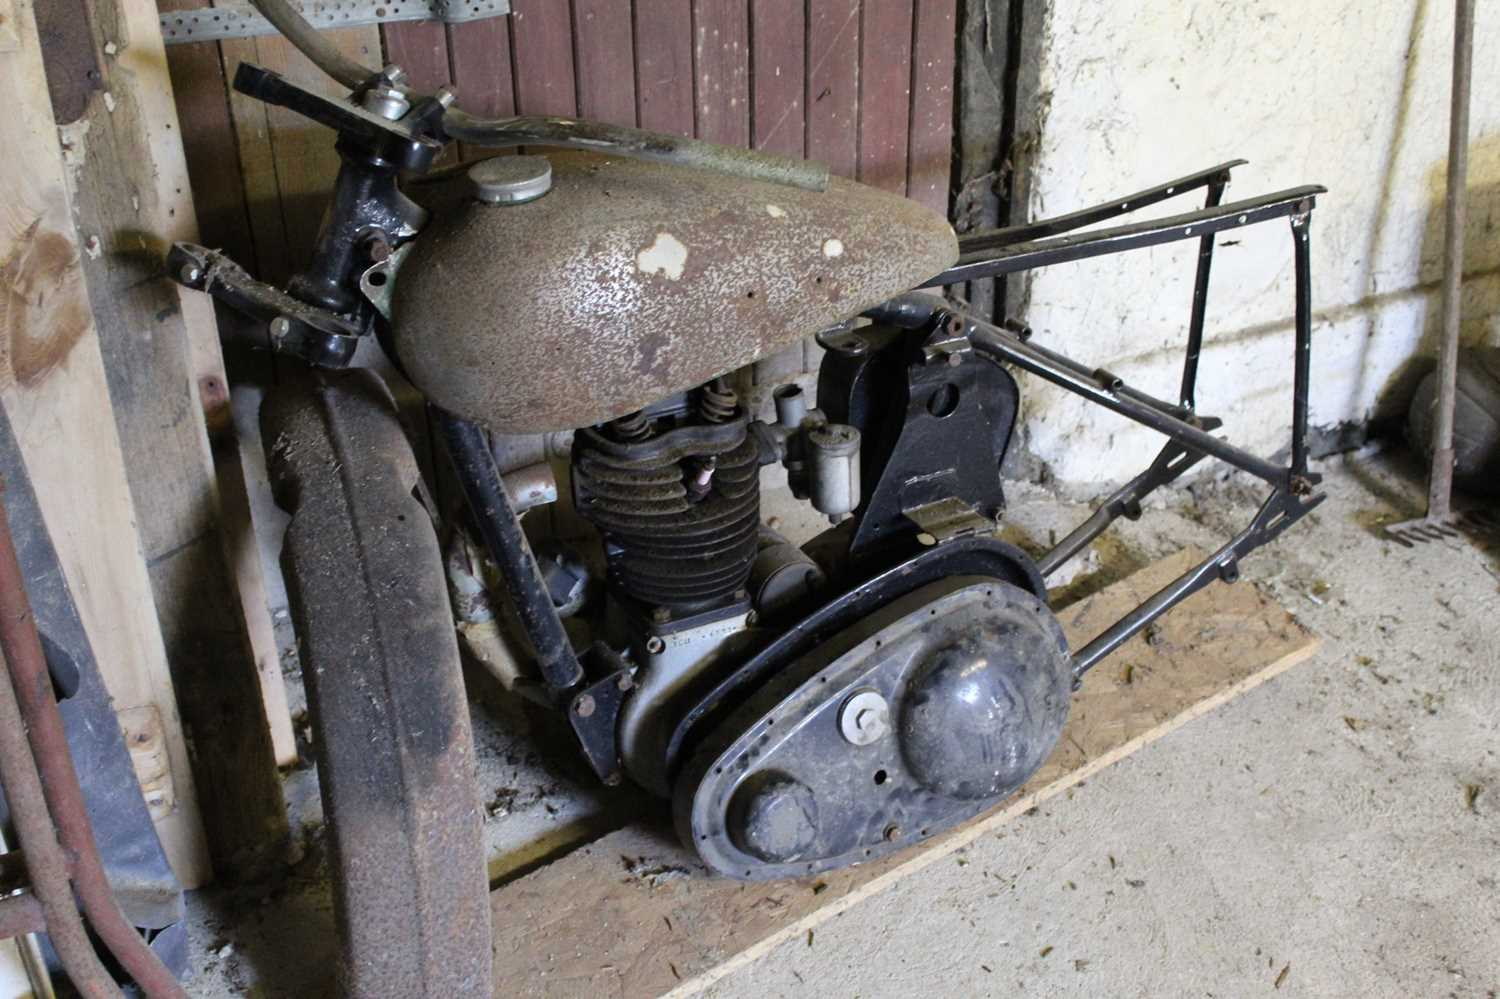 A 1948 BSA C11 project for restoration, engine No. YC11 4331, frame number YC 10/77076 IMPORTANT - Image 3 of 4